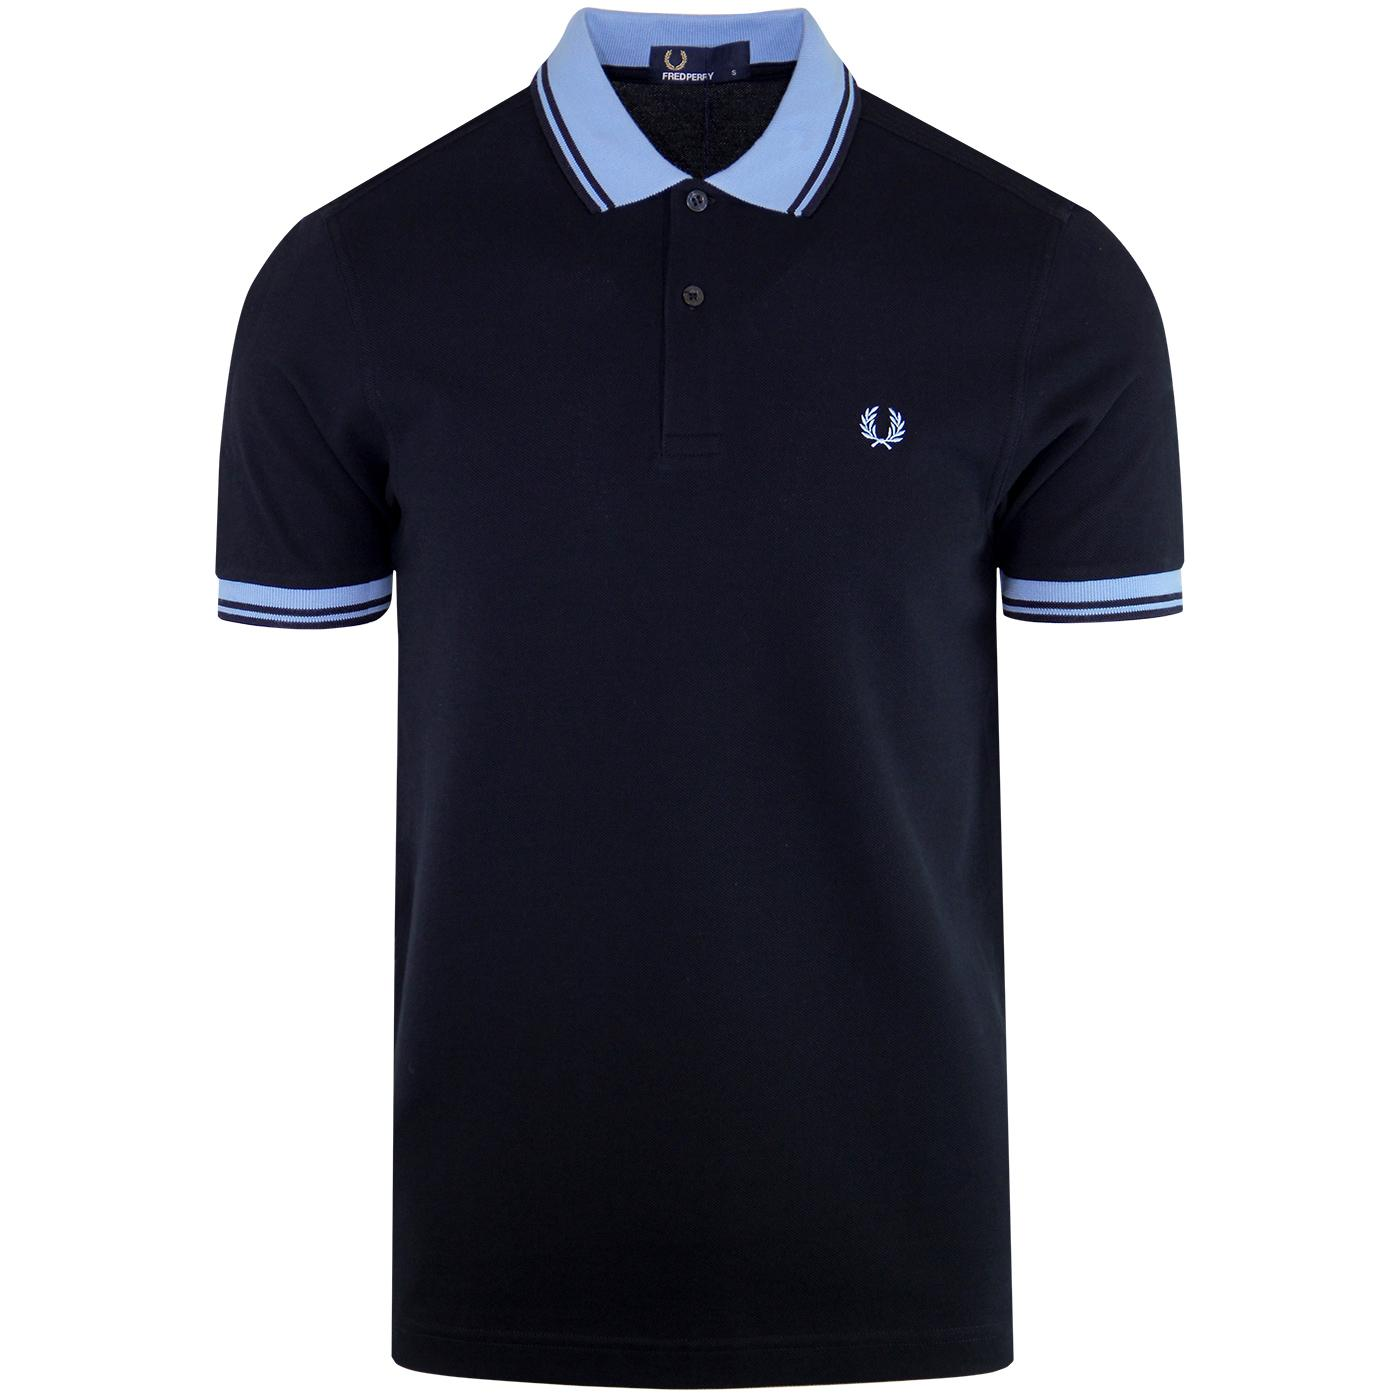 FRED PERRY Mod Twin Tipped Contrast Trim Polo (N)